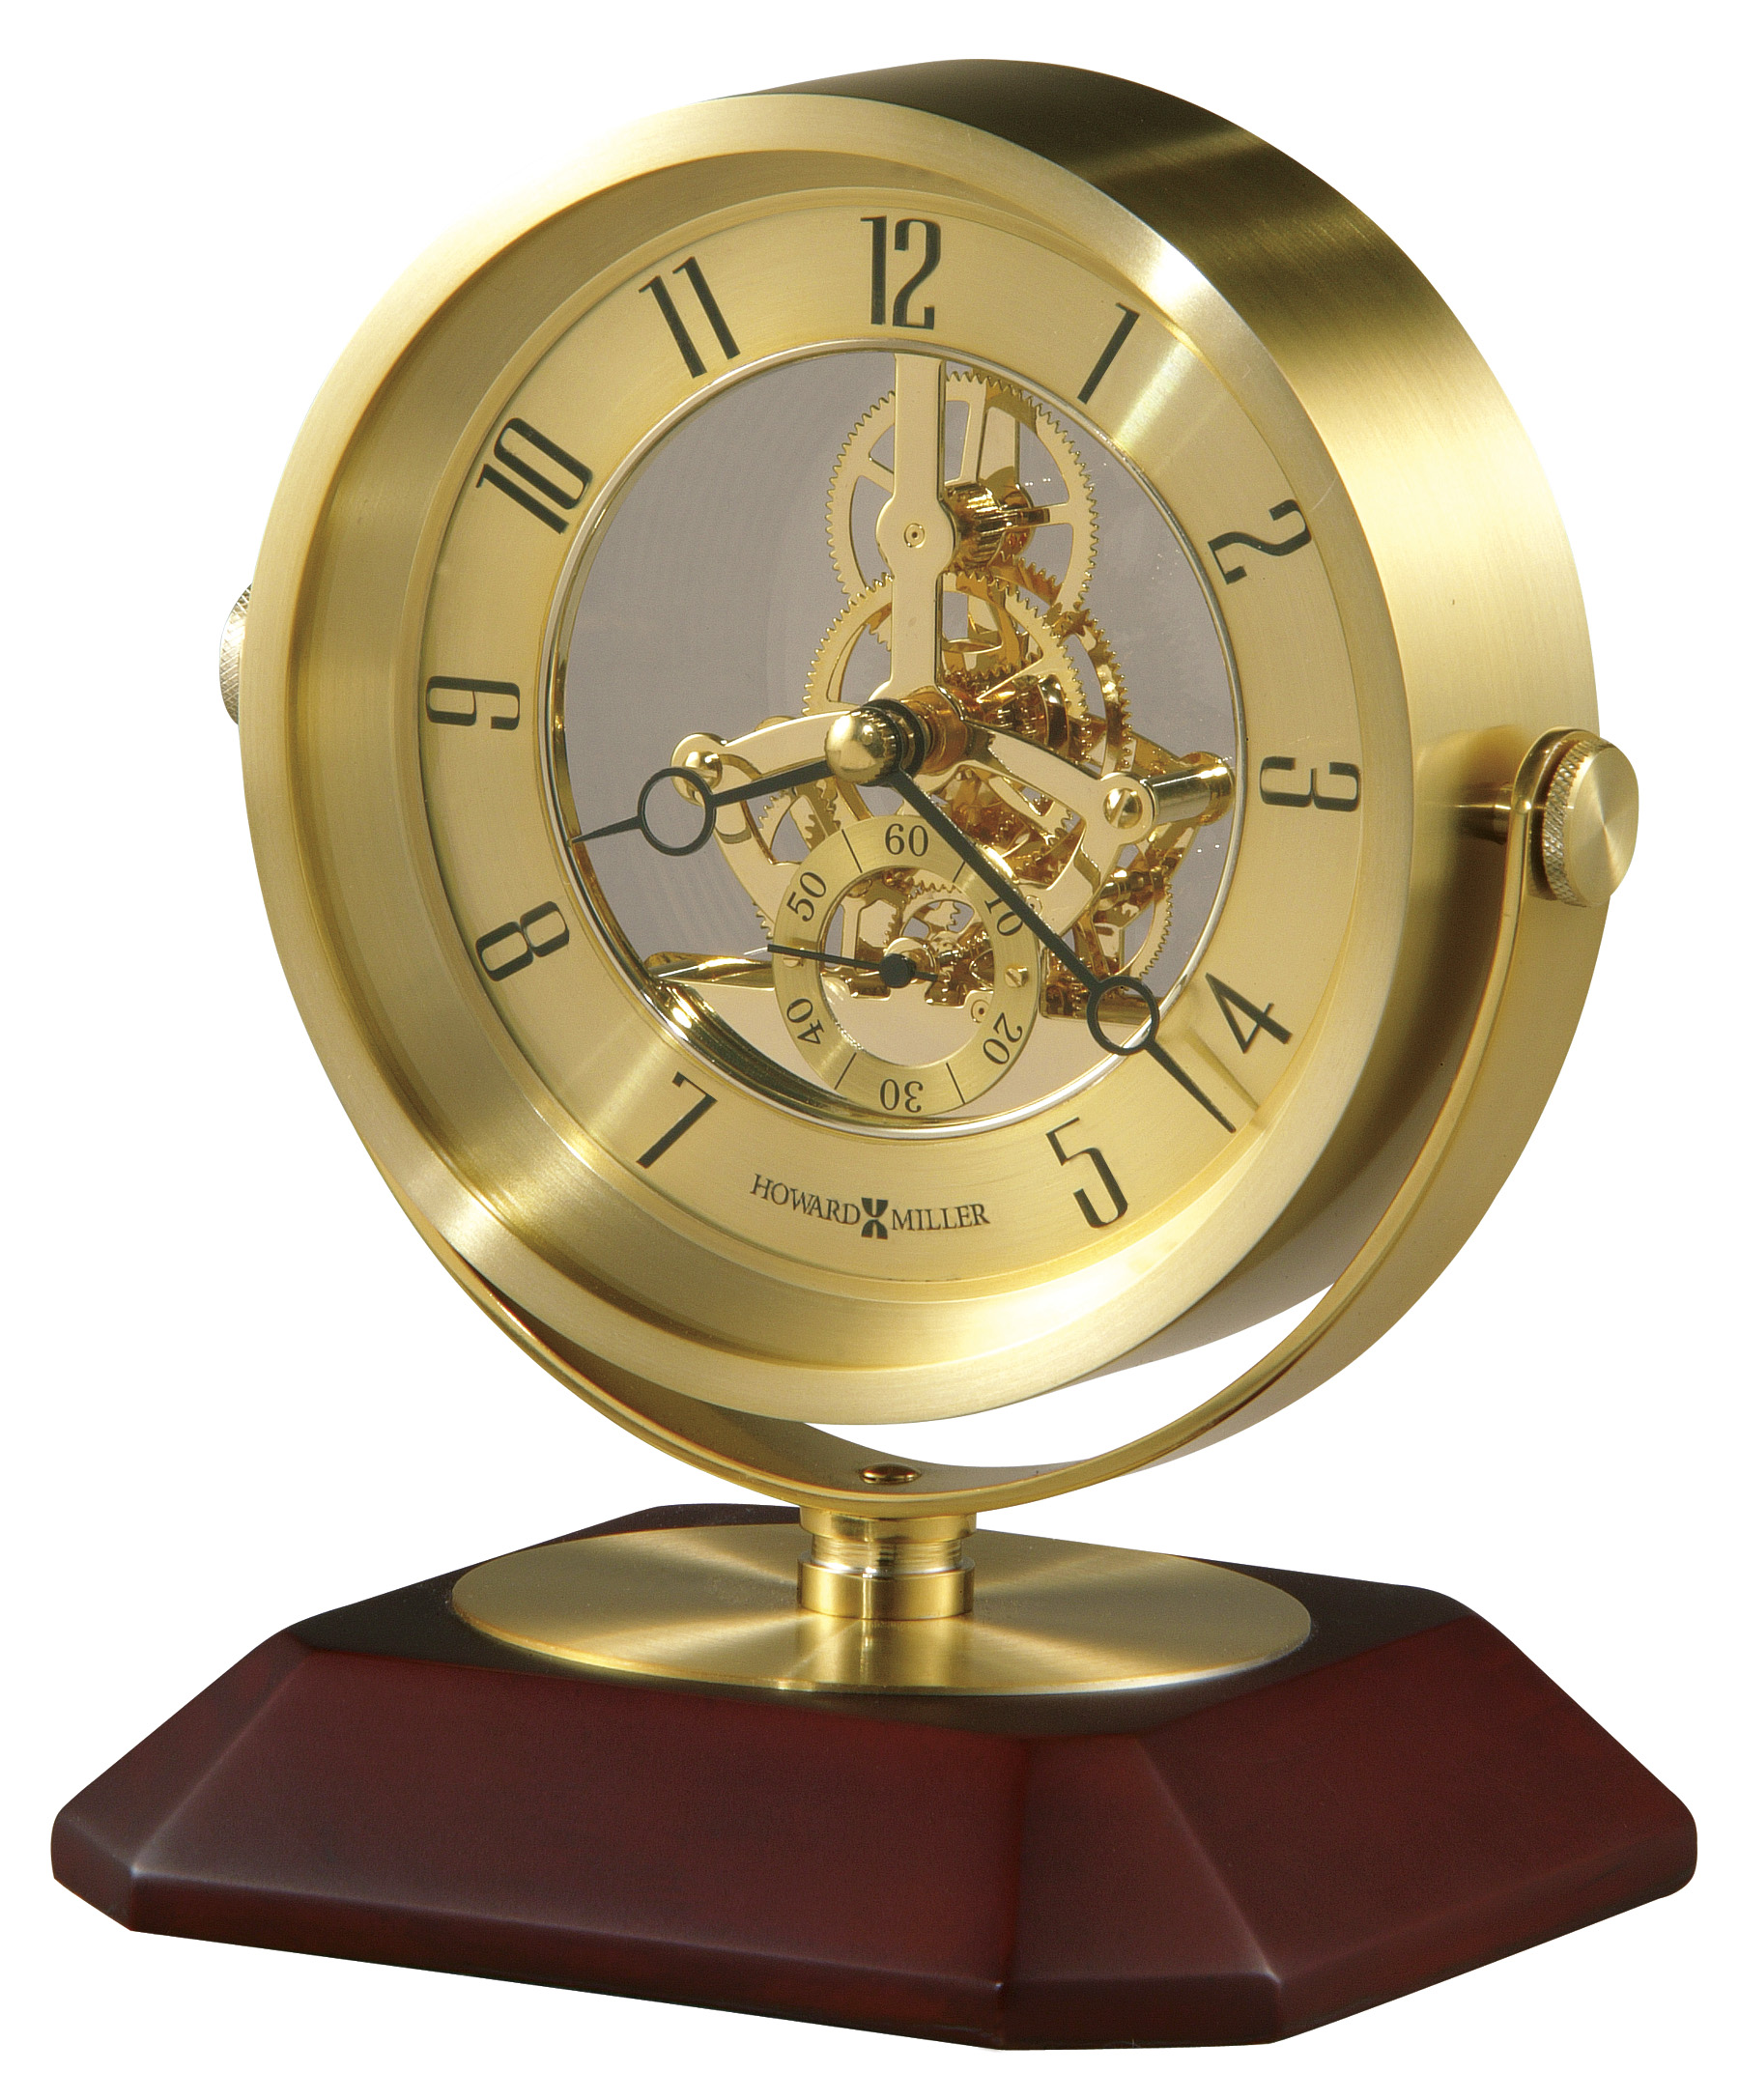 Howard Miller Mantel Clock Parts | Howard Miller Clock Parts | Howard Miller Wall Clocks